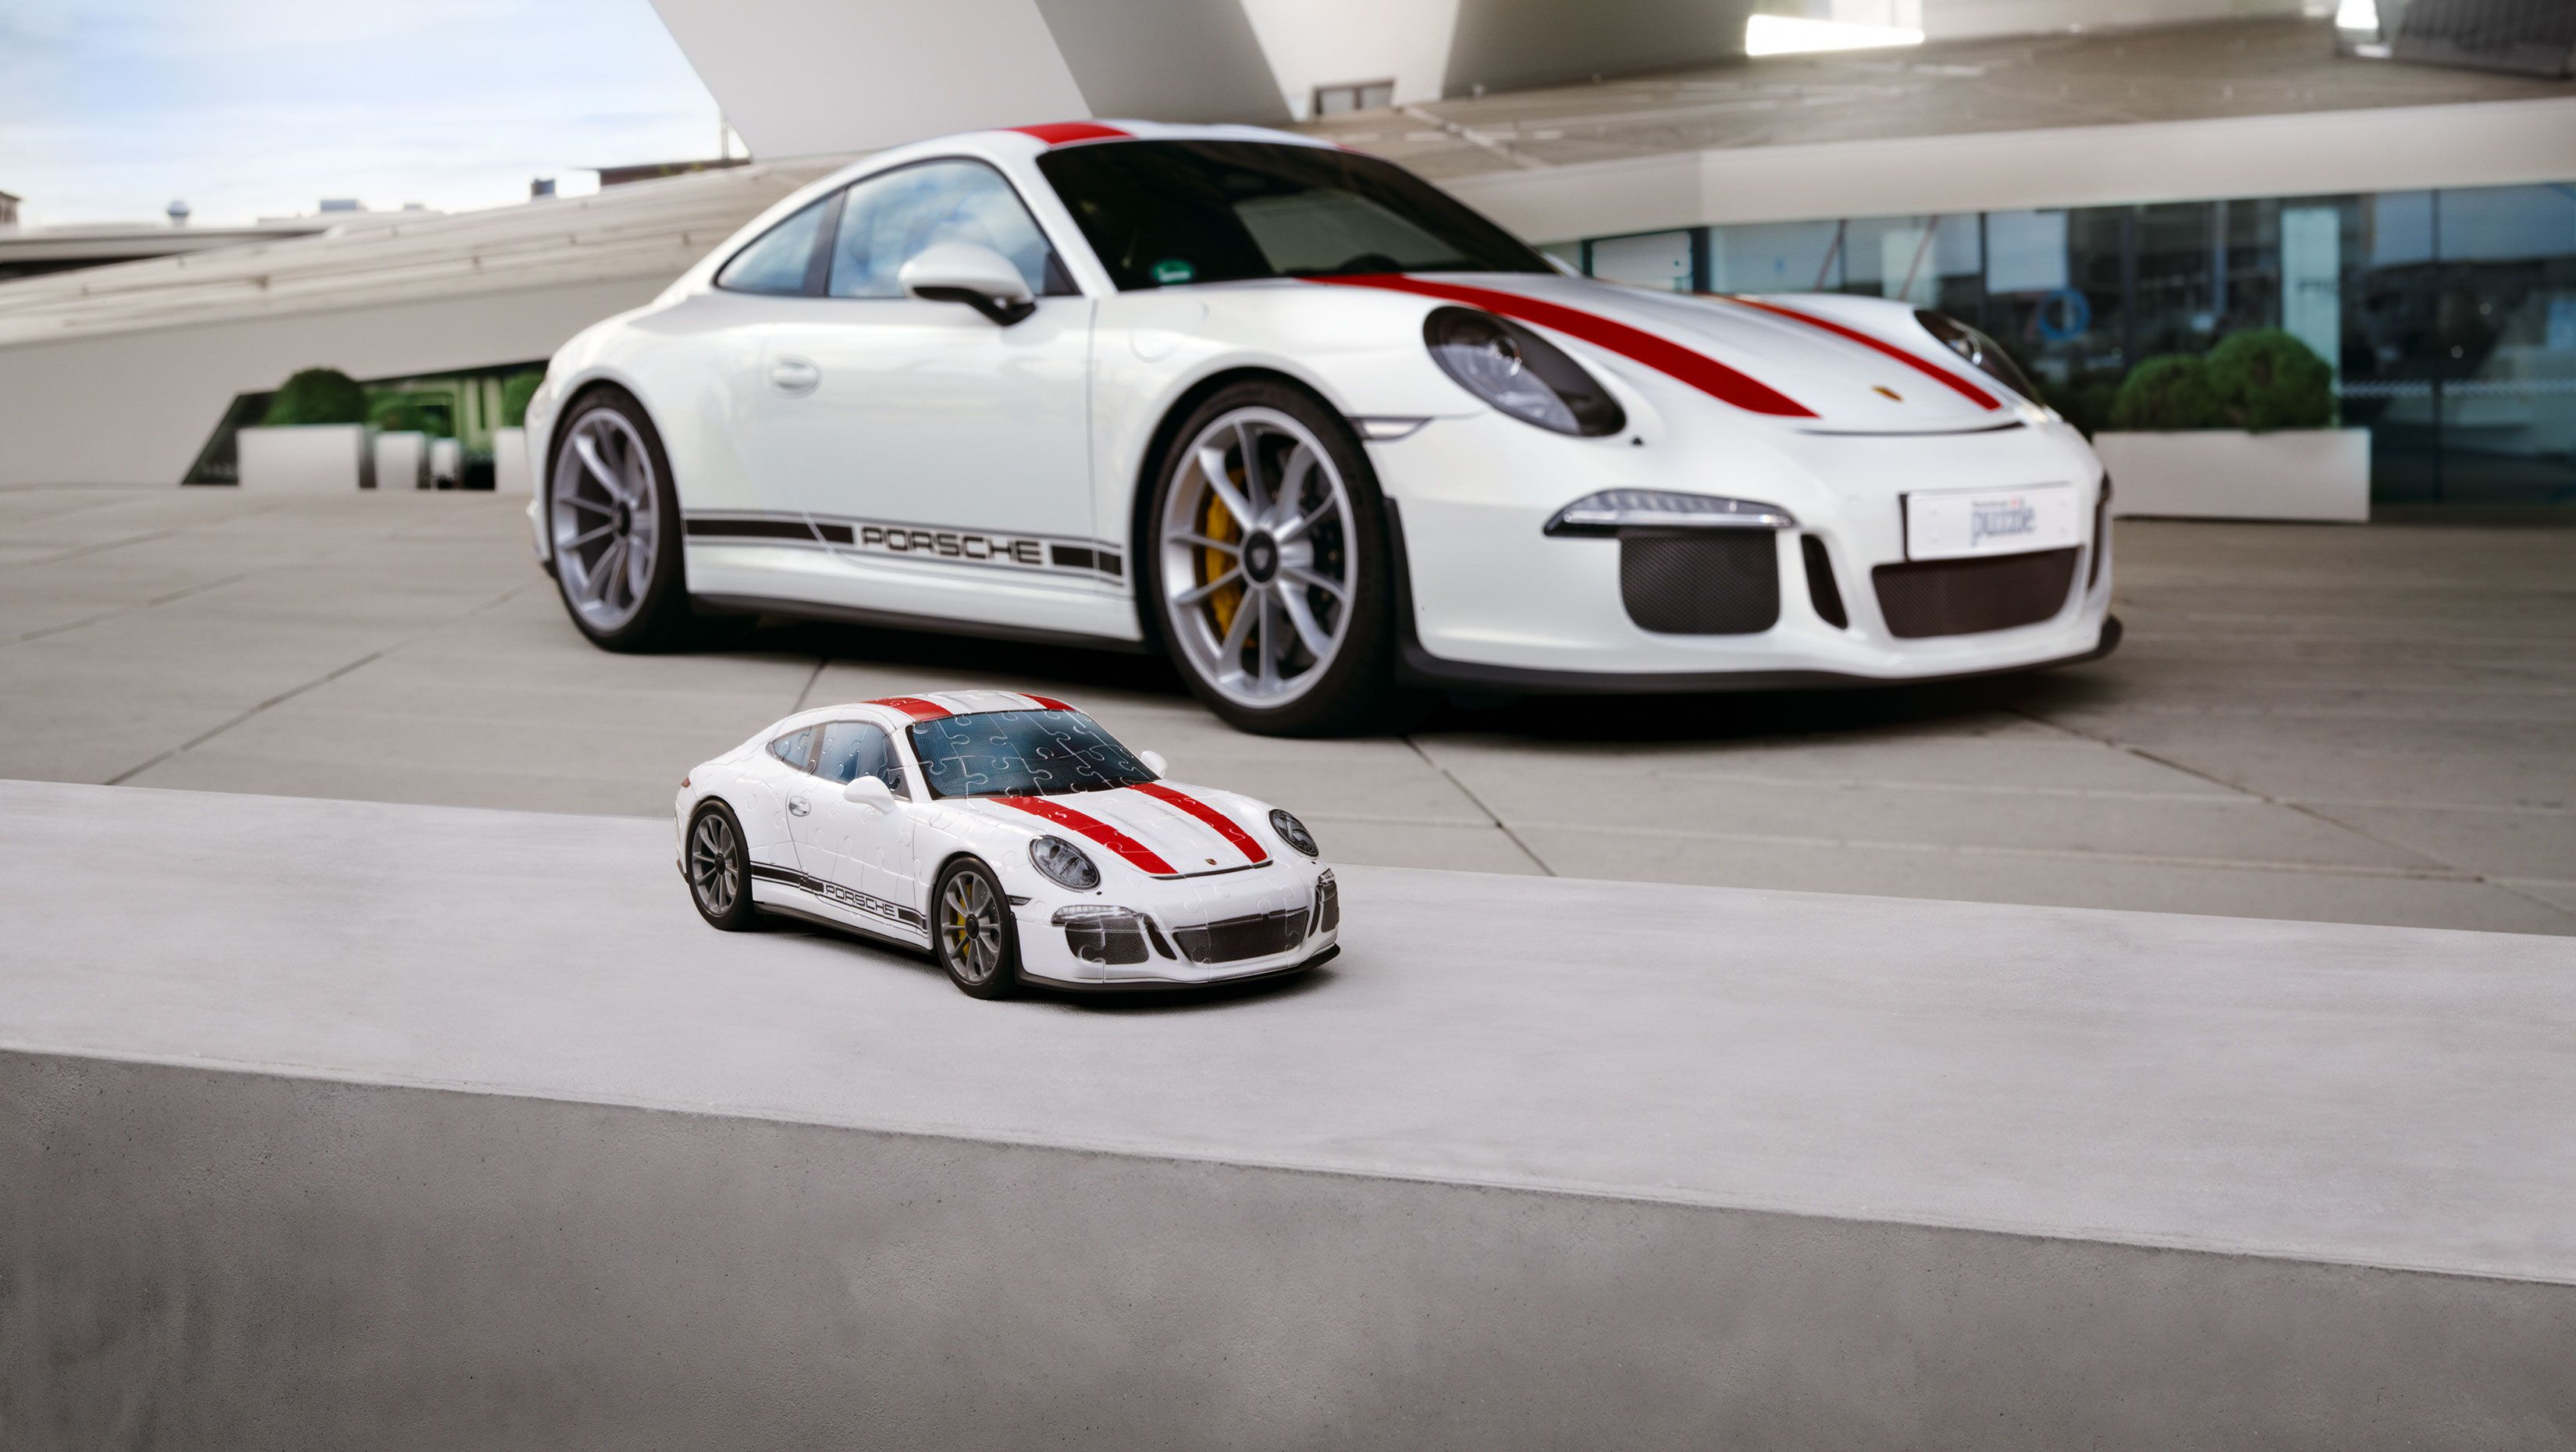 You Can Now Own Your Very Own Porsche 911r In 3d Puzzle Form Top Speed Porsche Latest Cars 3d Puzzles